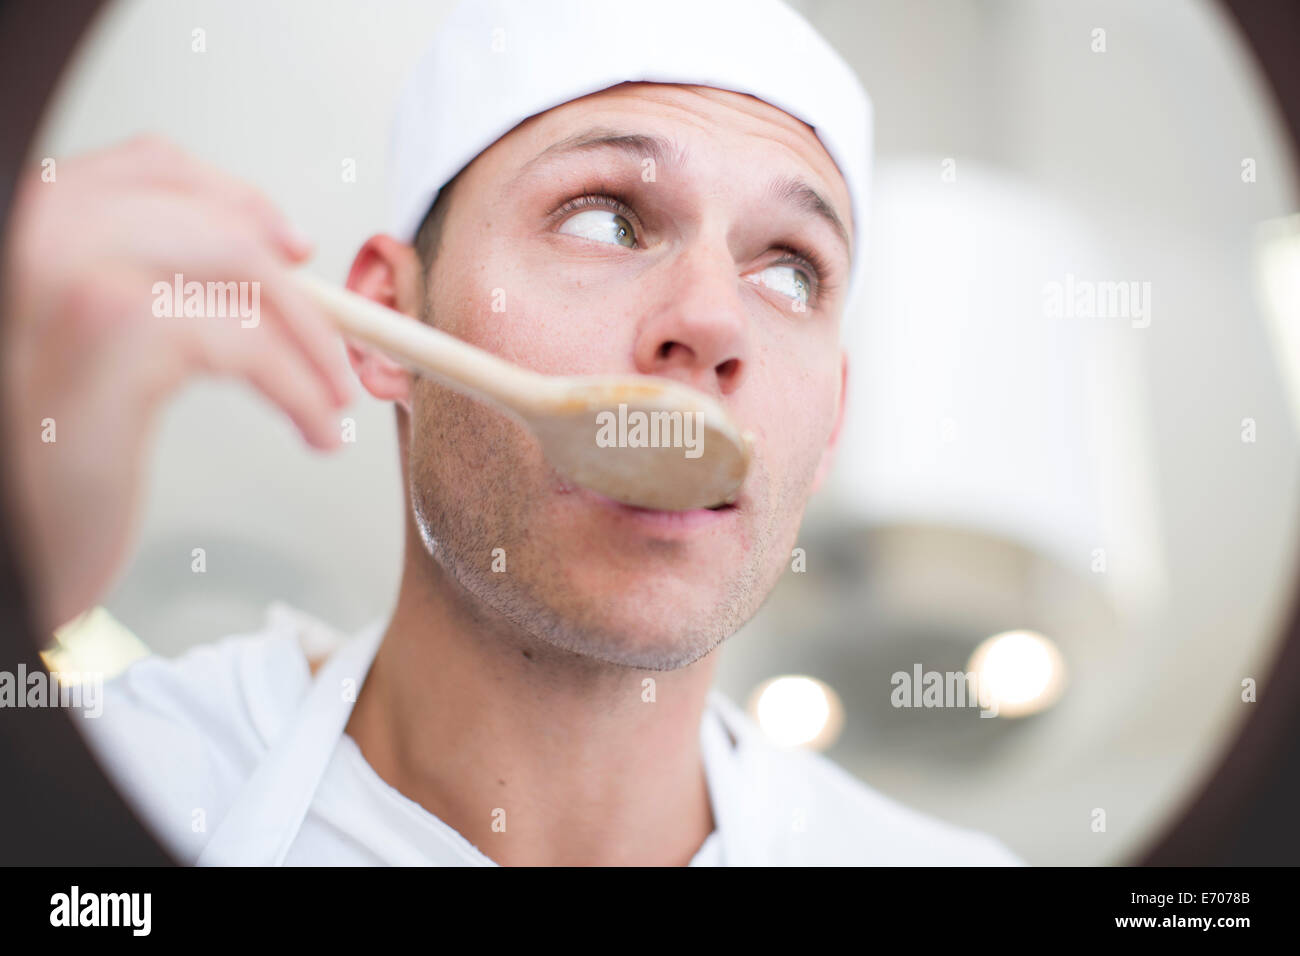 Male chef tasting food from saucepan in commercial kitchen Stock Photo